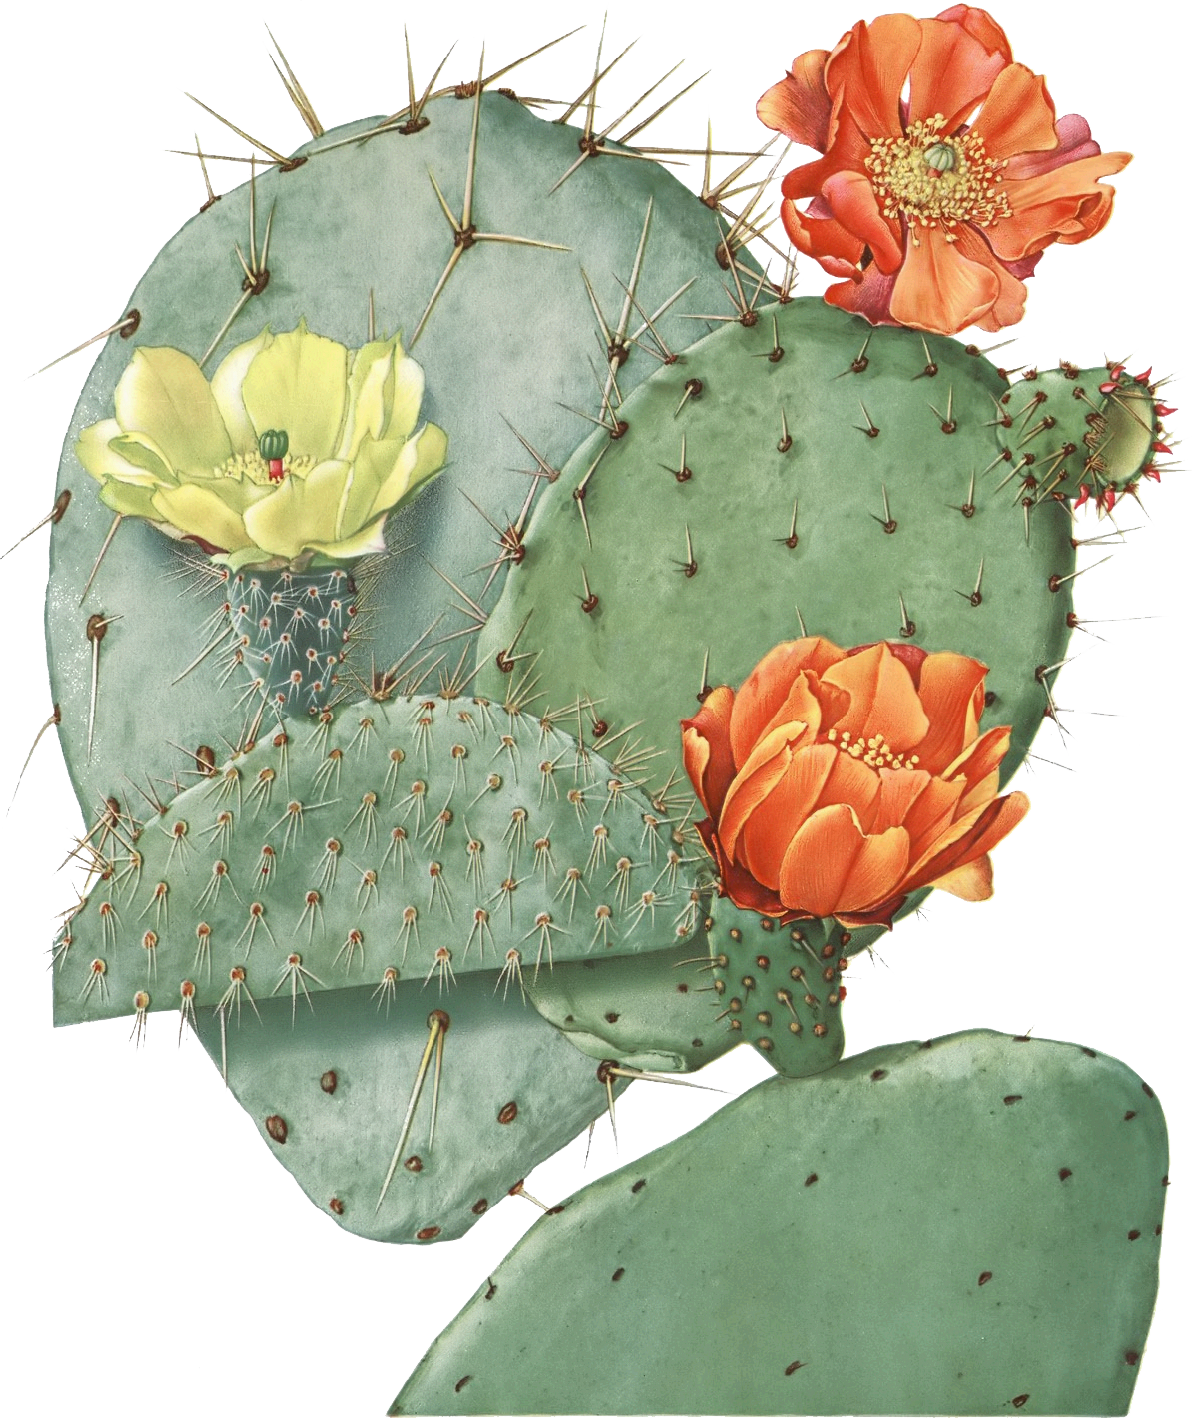 Drawing cactus prickly pear. Image result for illustration